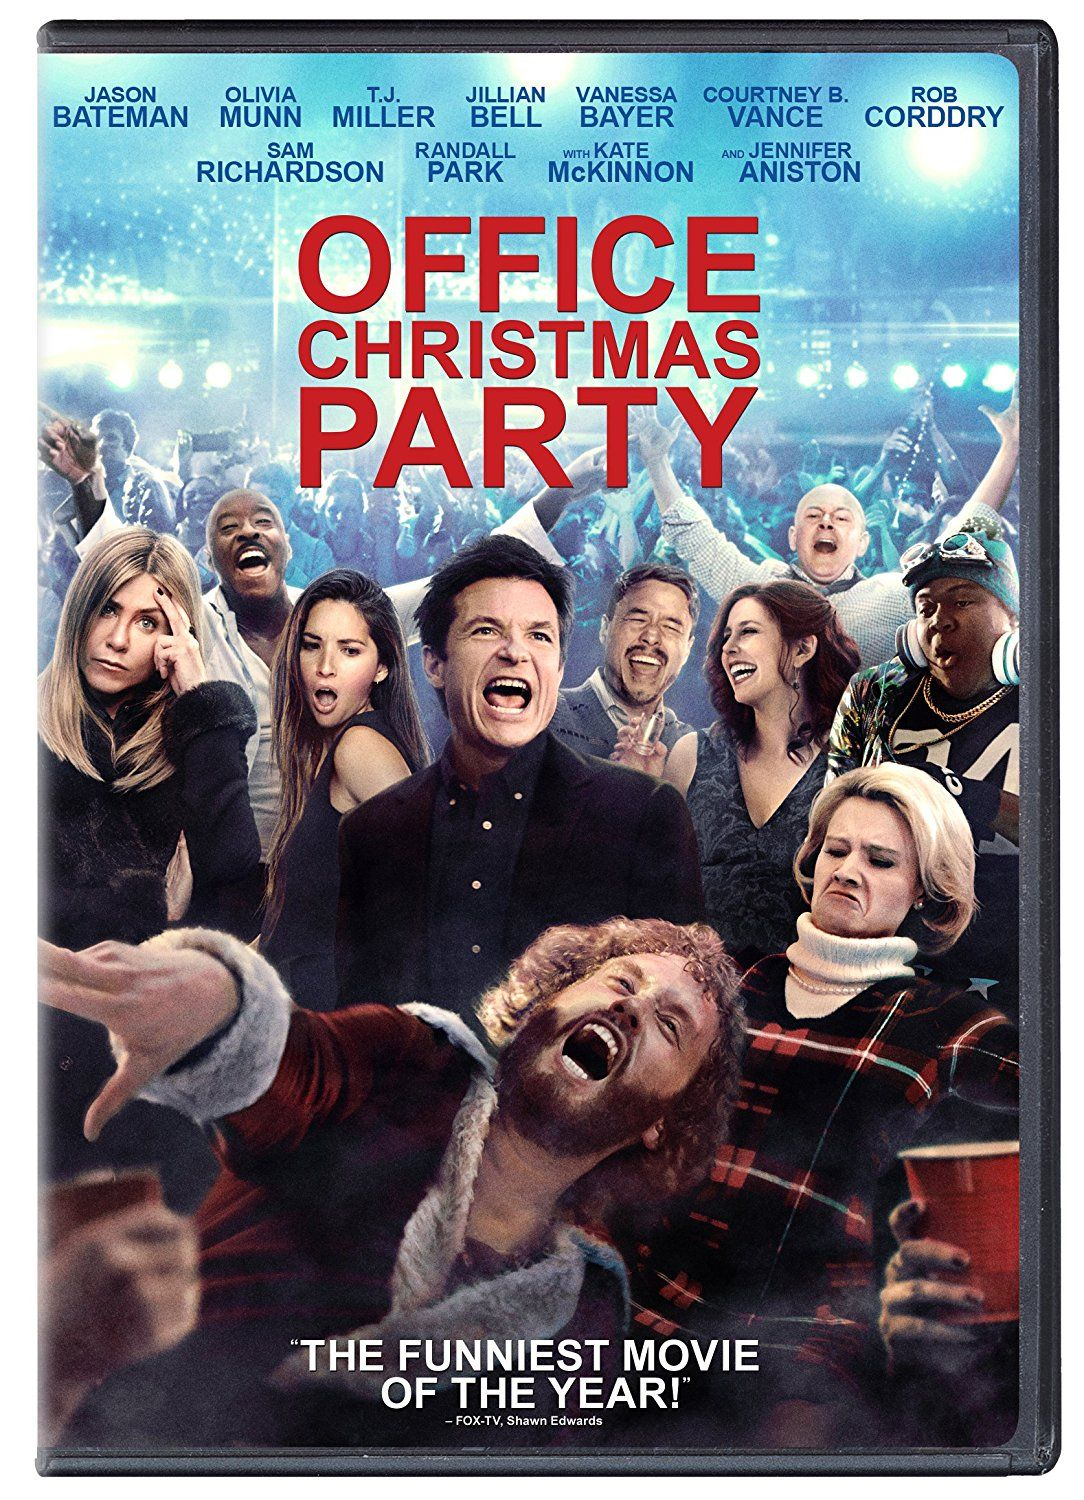 Amazon.com: Office Christmas Party [DVD]: Jason Bateman, T.J. Miller ...